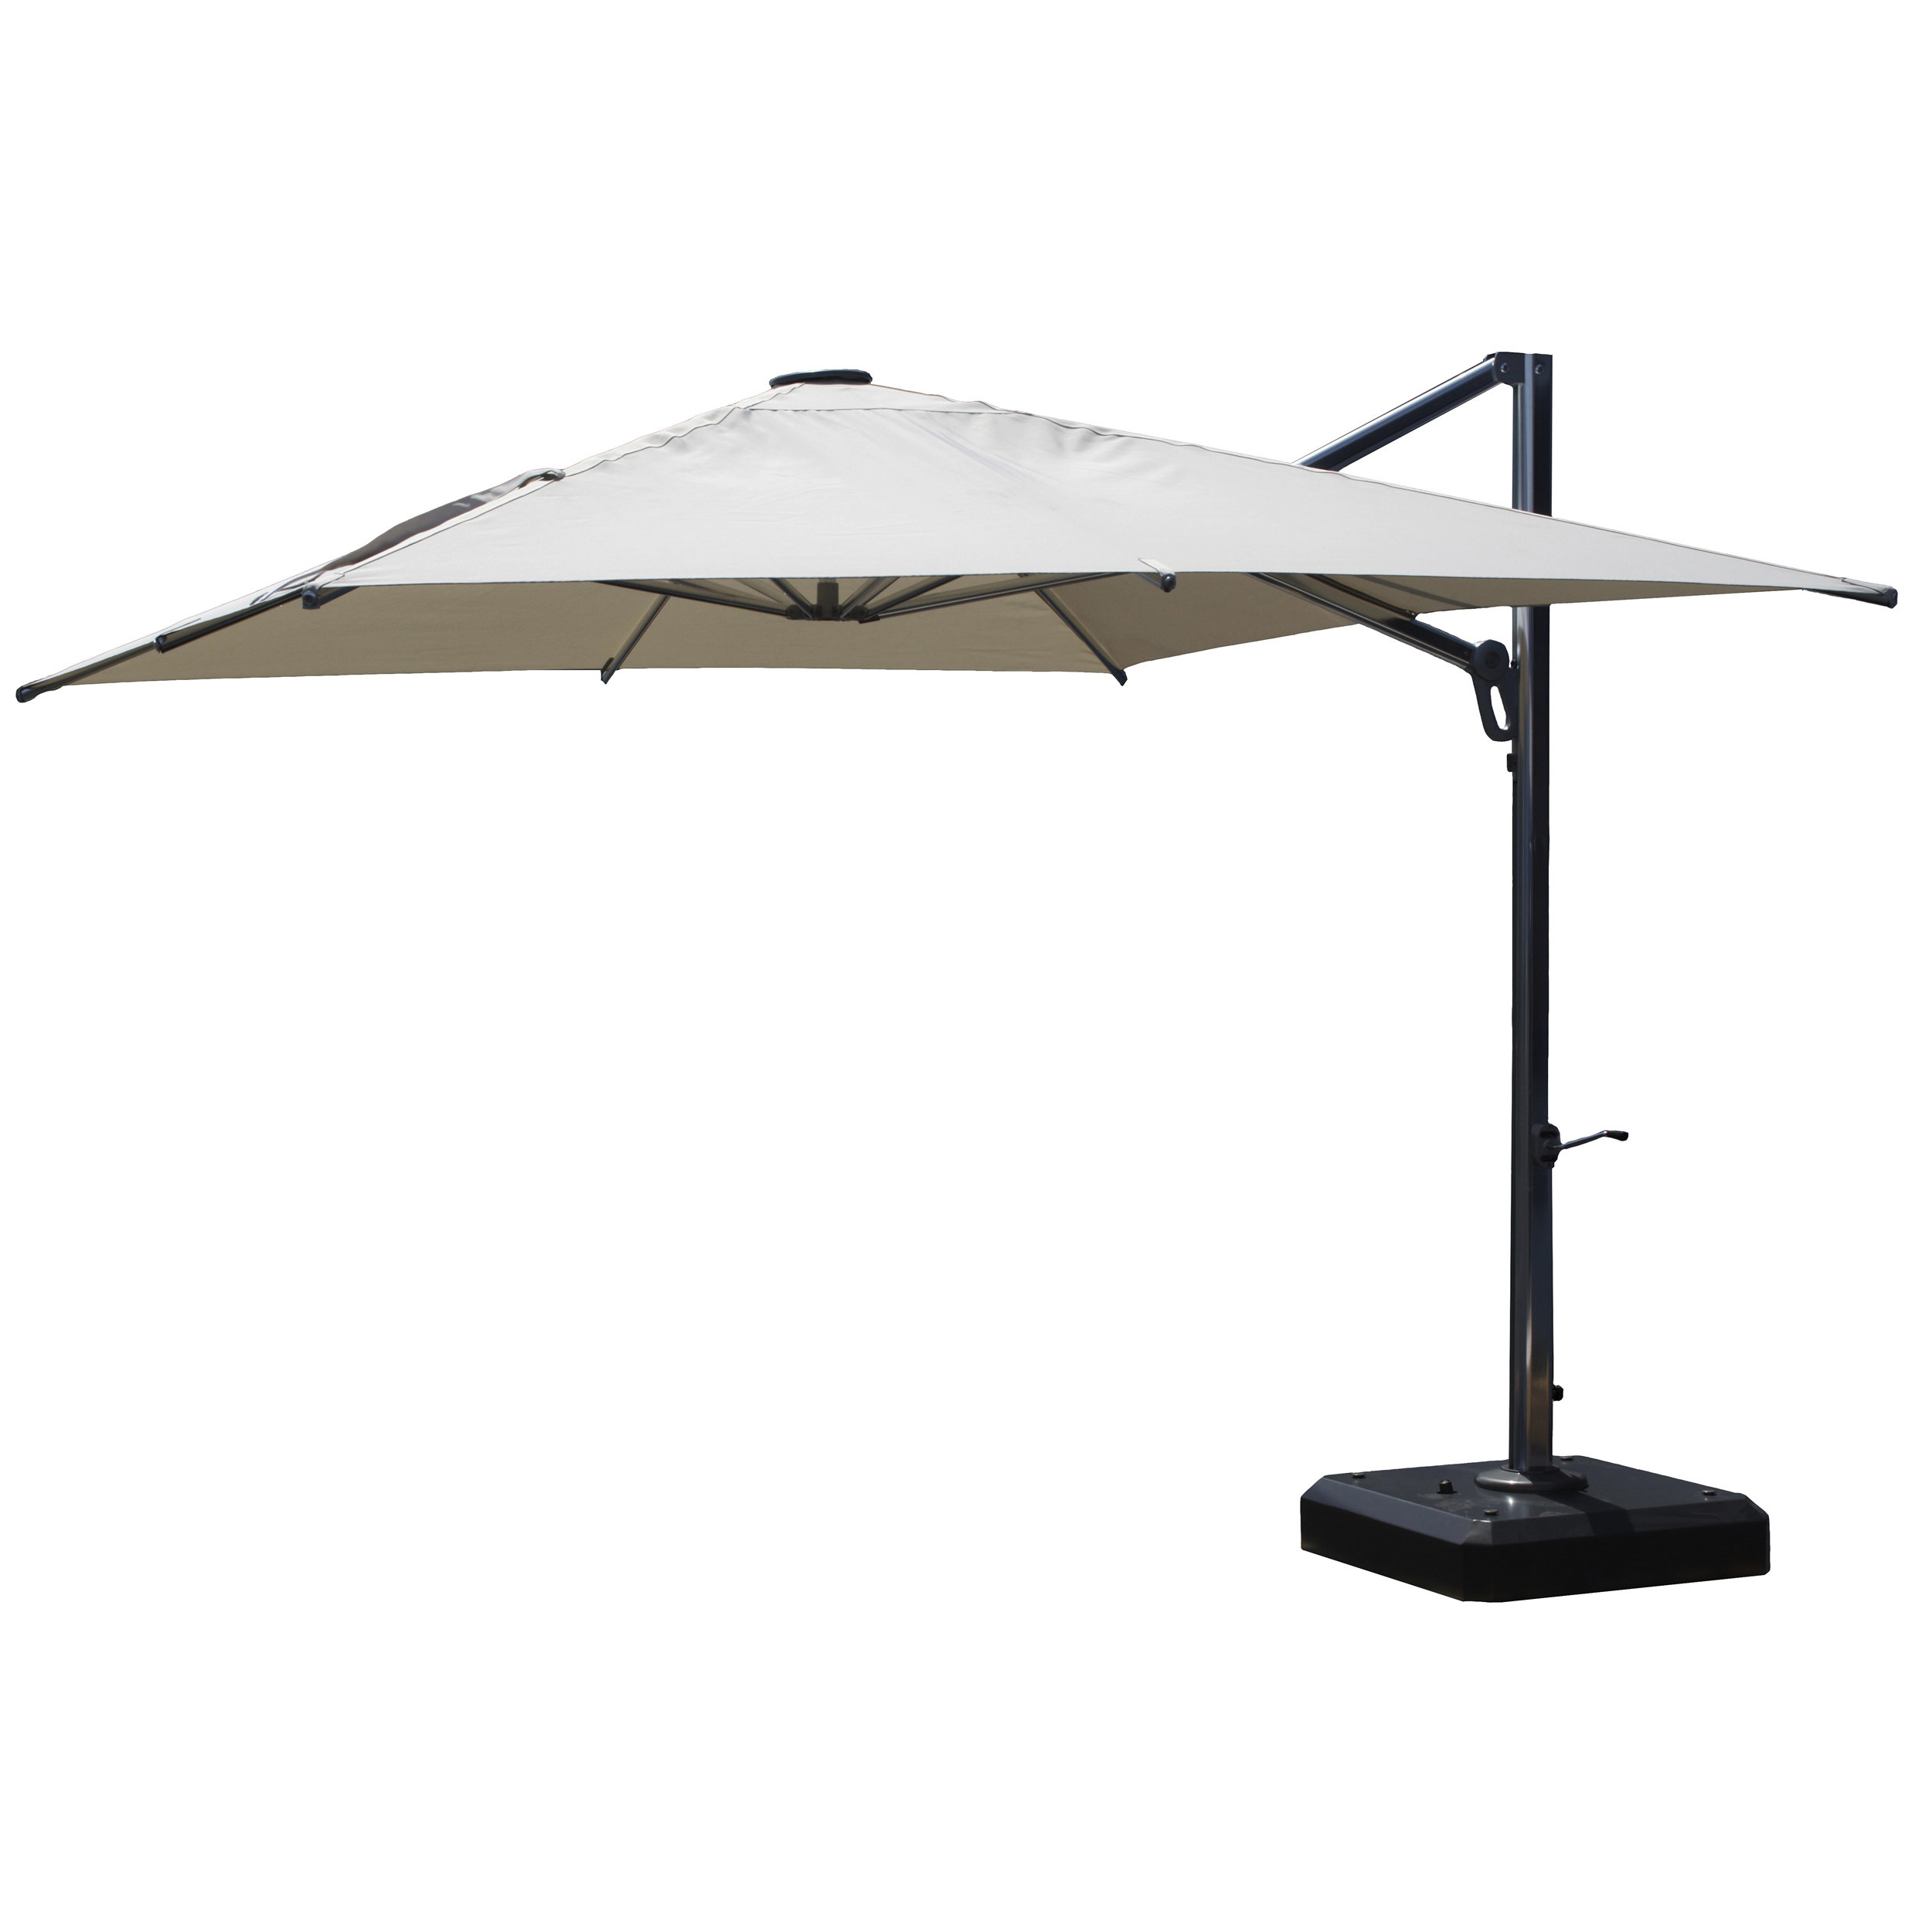 10' Square Cantilever Umbrella Pertaining To Well Known Frederick Square Cantilever Umbrellas (Gallery 2 of 20)